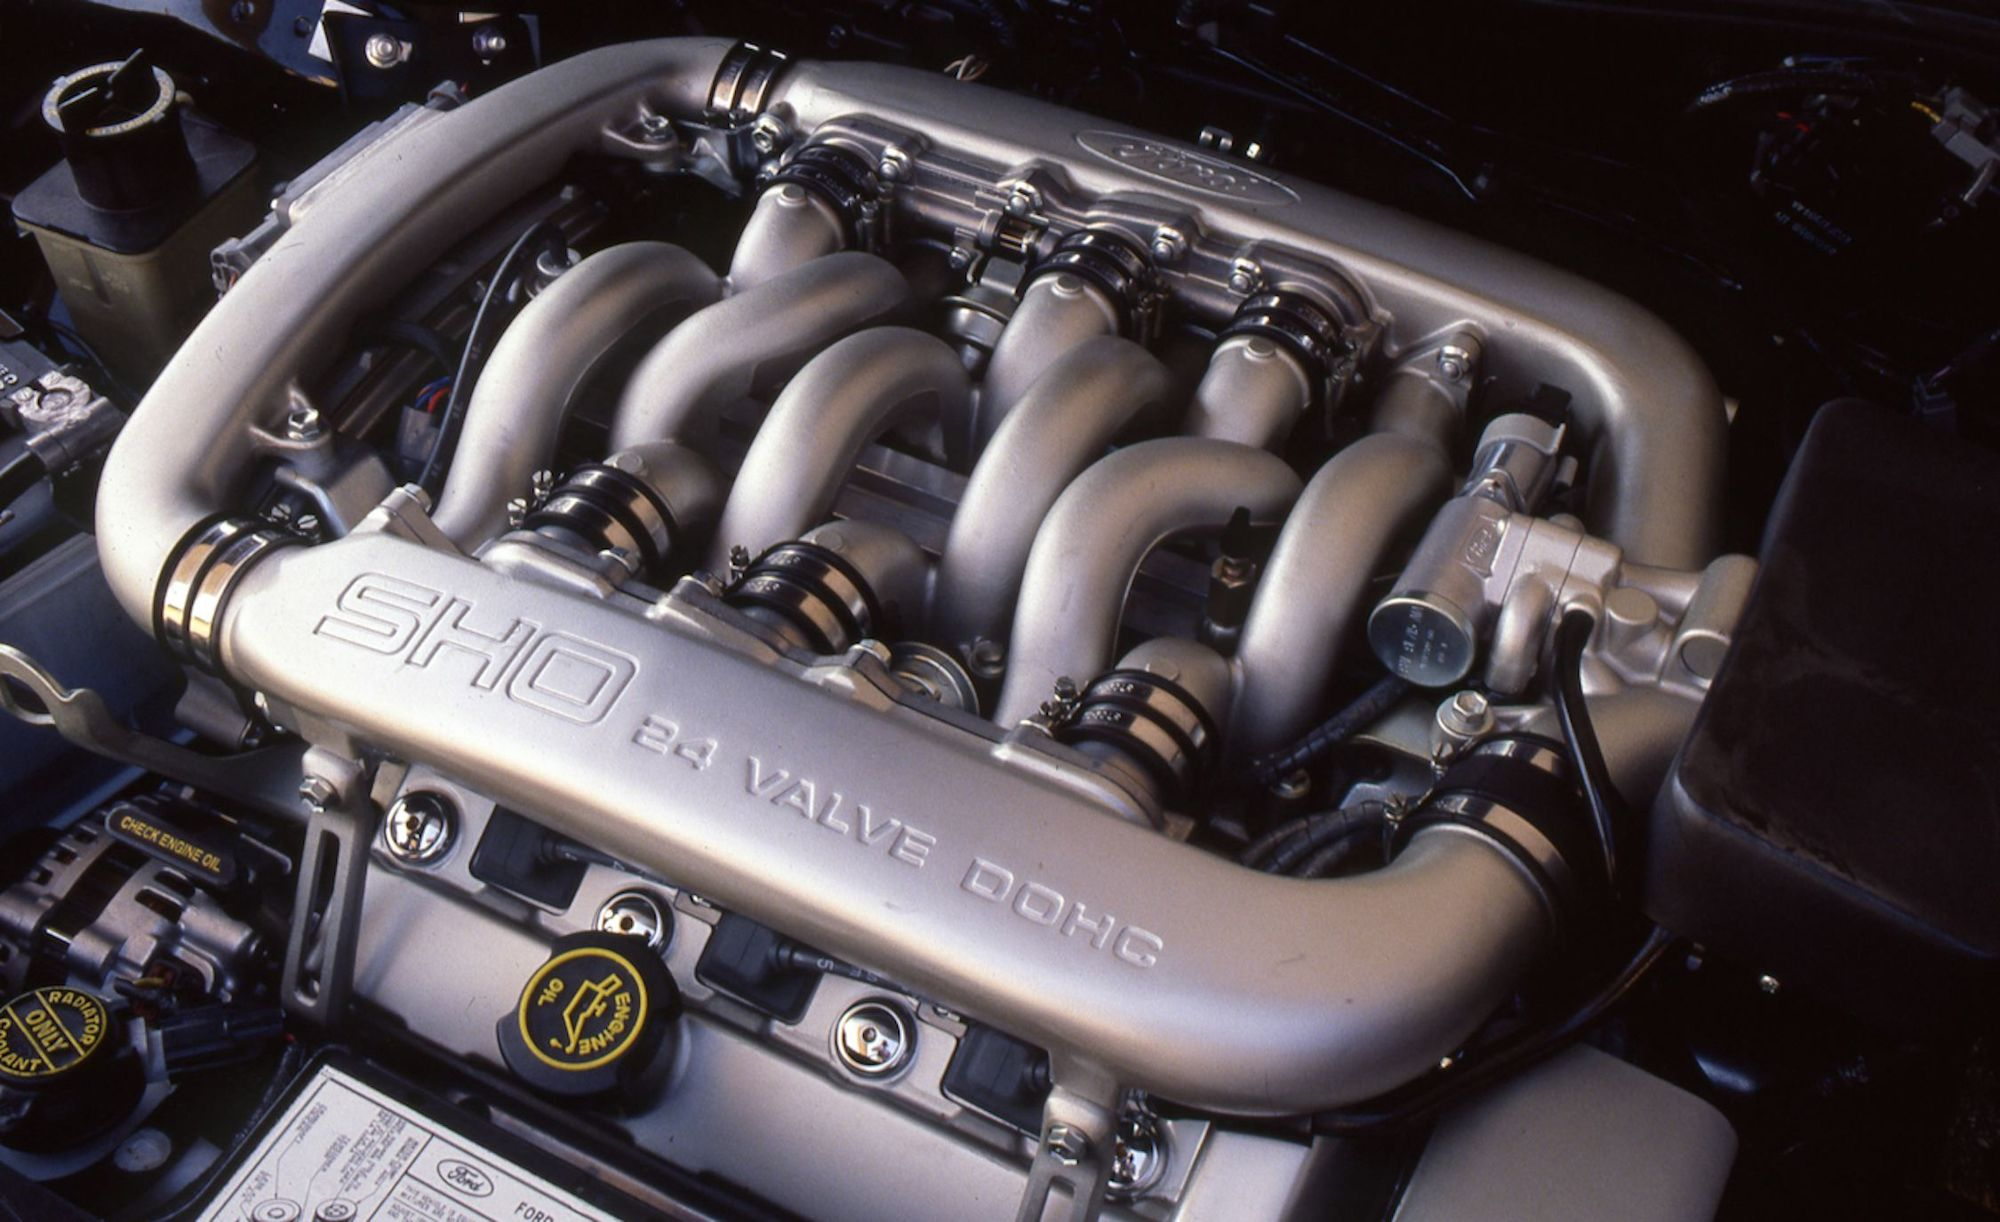 2.-1989-ford-taurus-sho-30-liter-v-6-engine-photo-568183-s-original.jpg